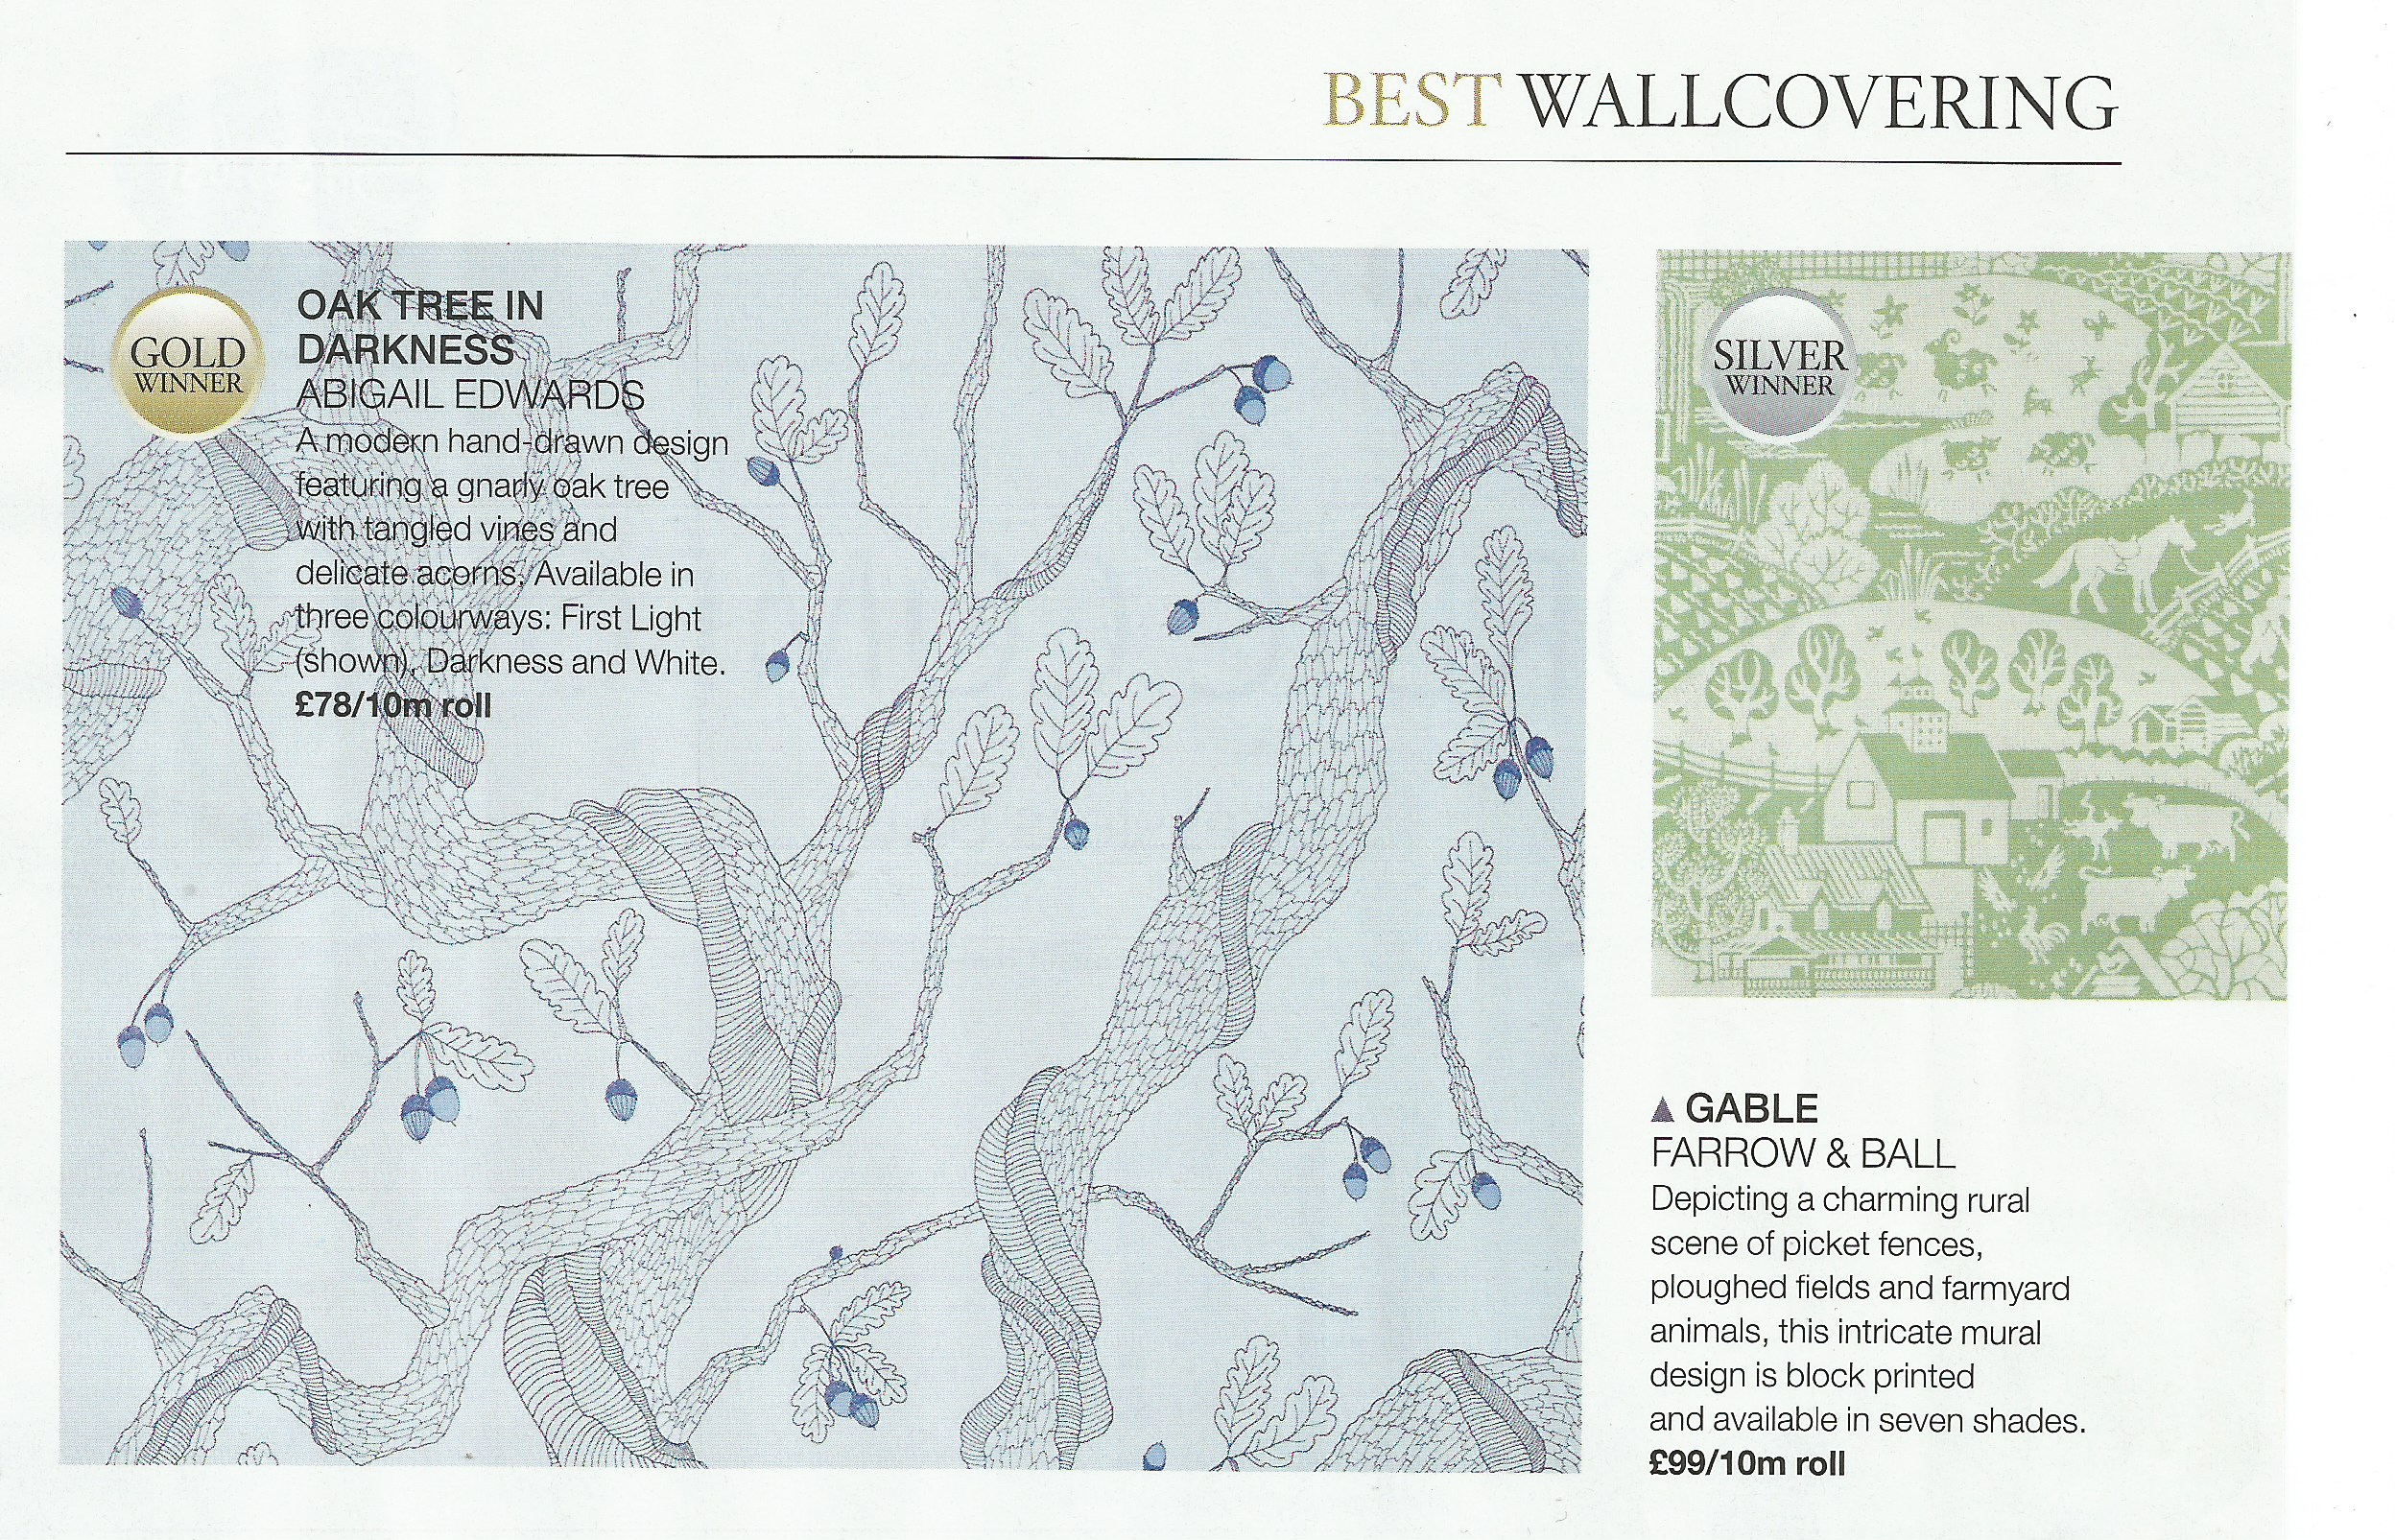 Oak Tree wallpaper wins gold at House Beautiful Awards